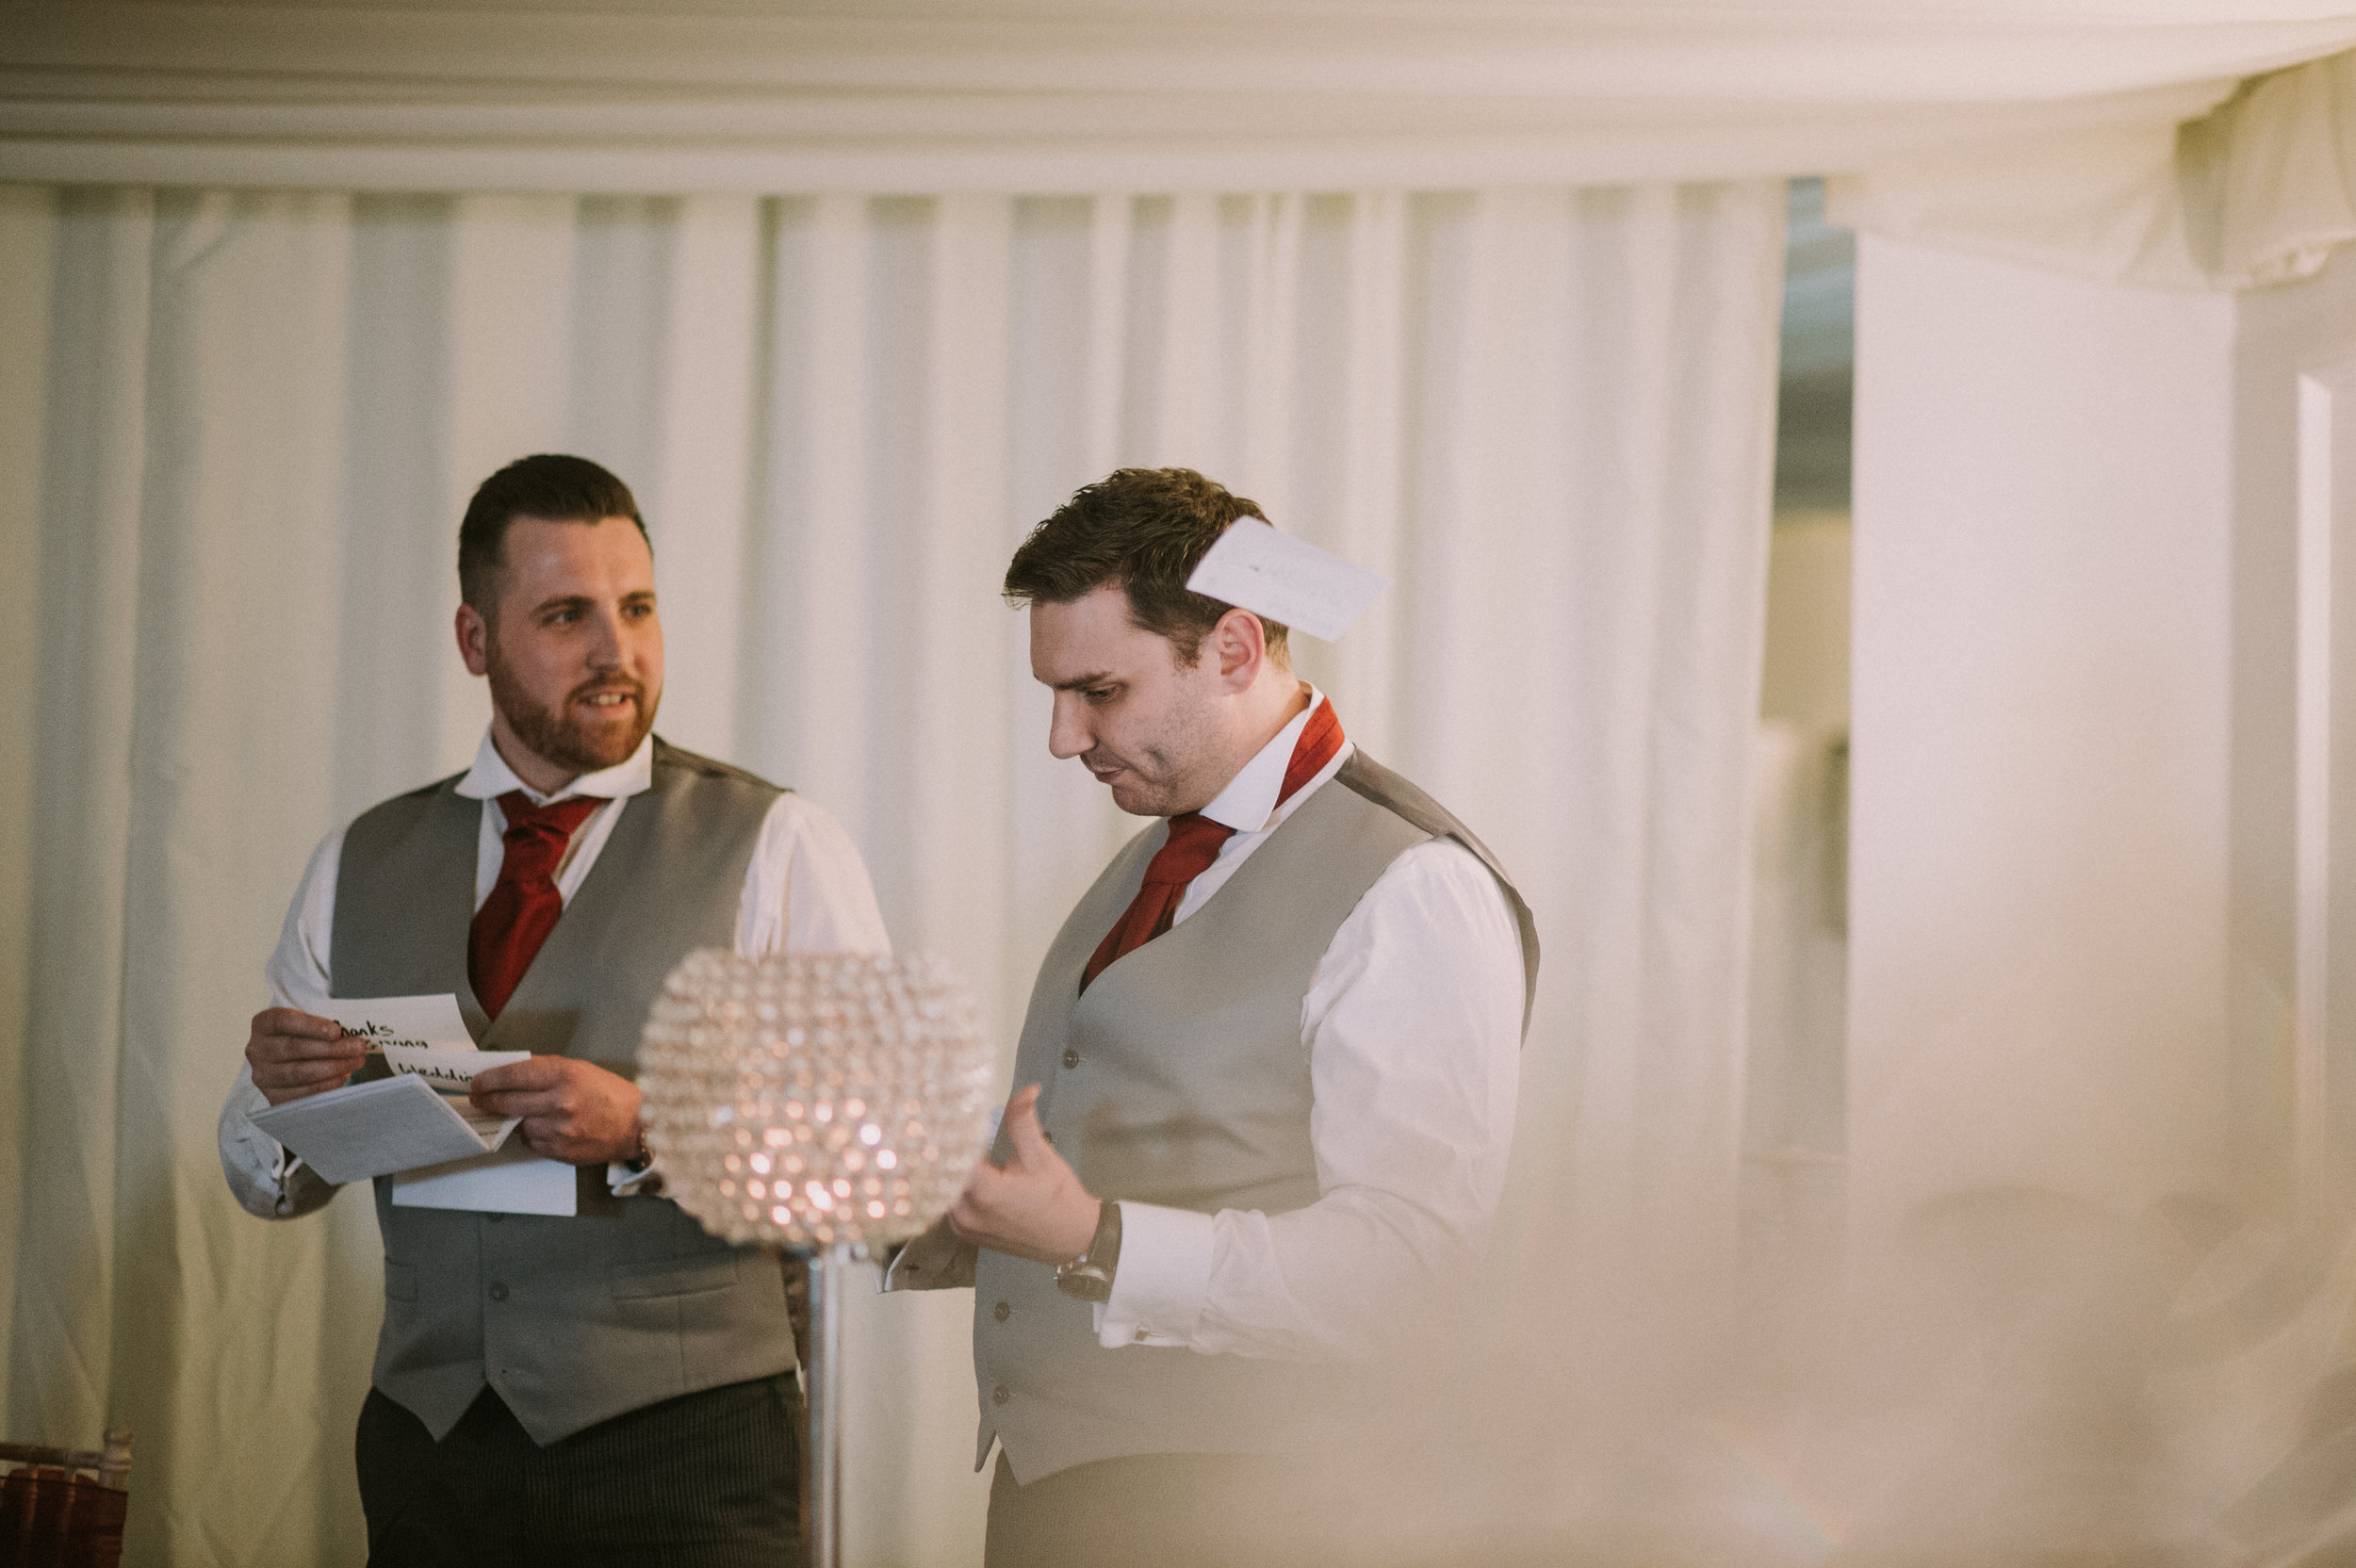 southdowns-manor-sussex-winter-wedding-photography-speeches-80